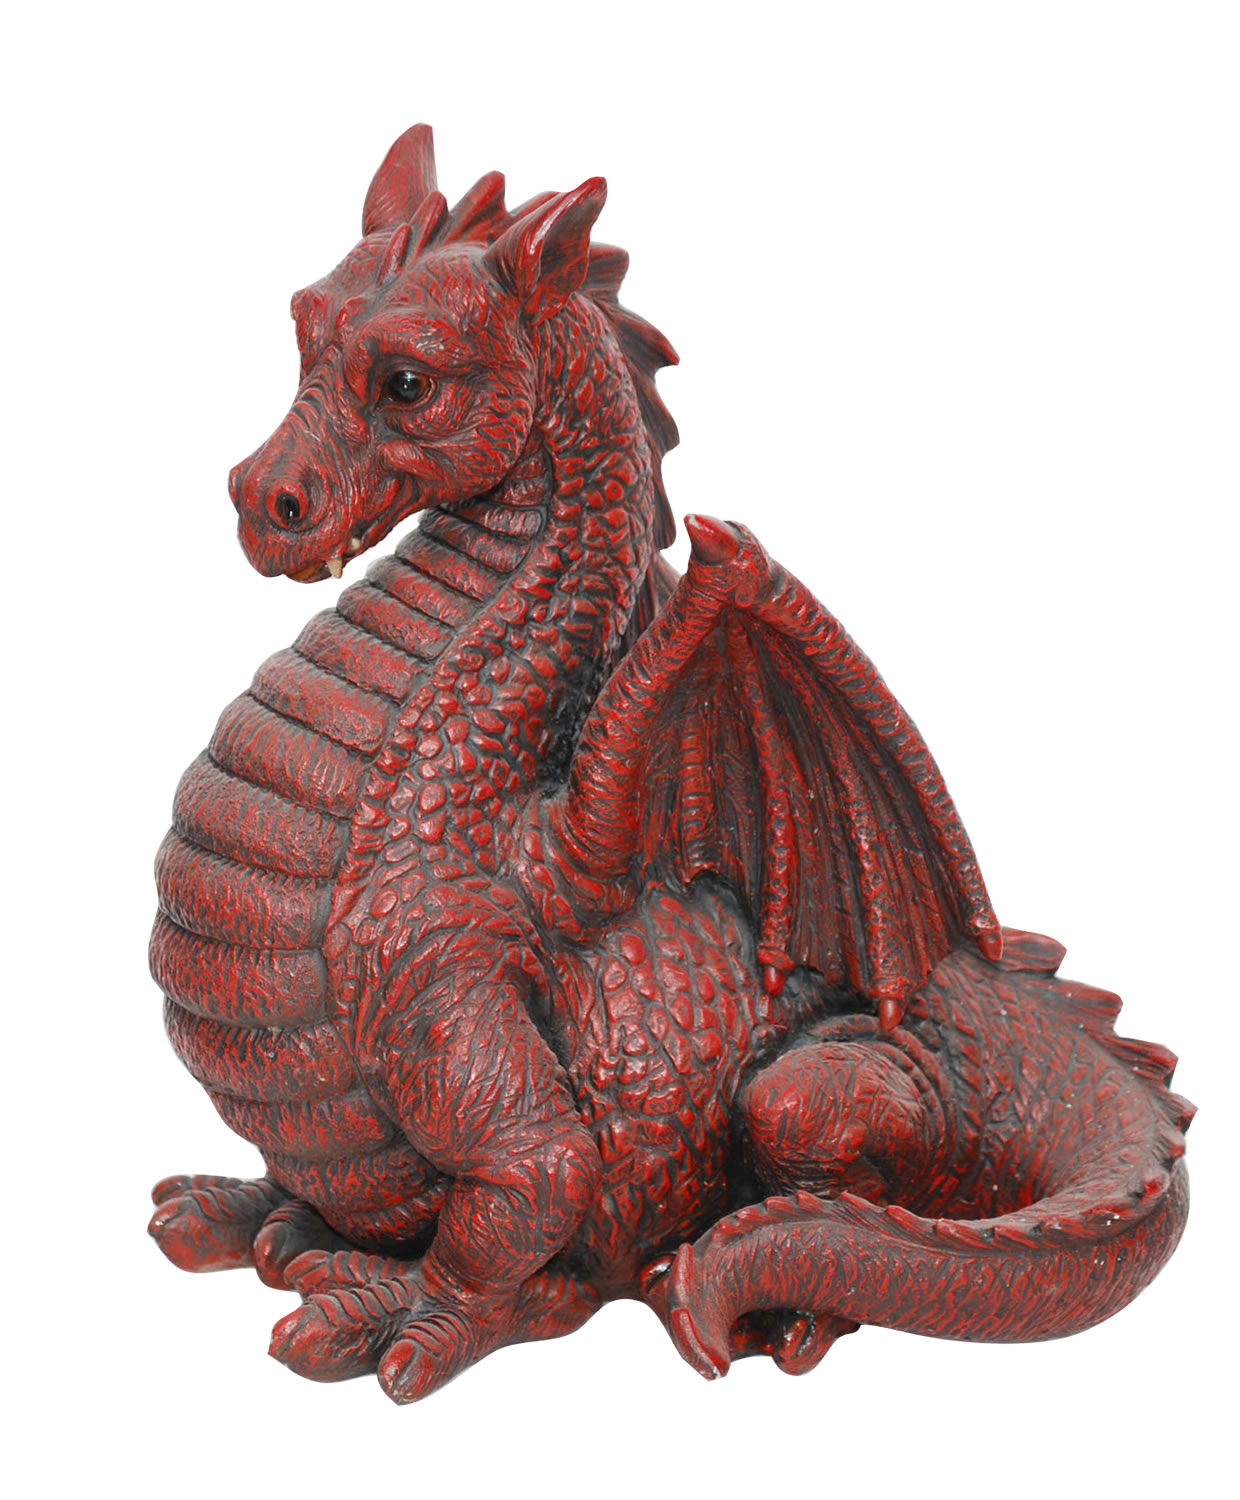 Red Winged Dragon Resin Garden Ornament 163 89 99